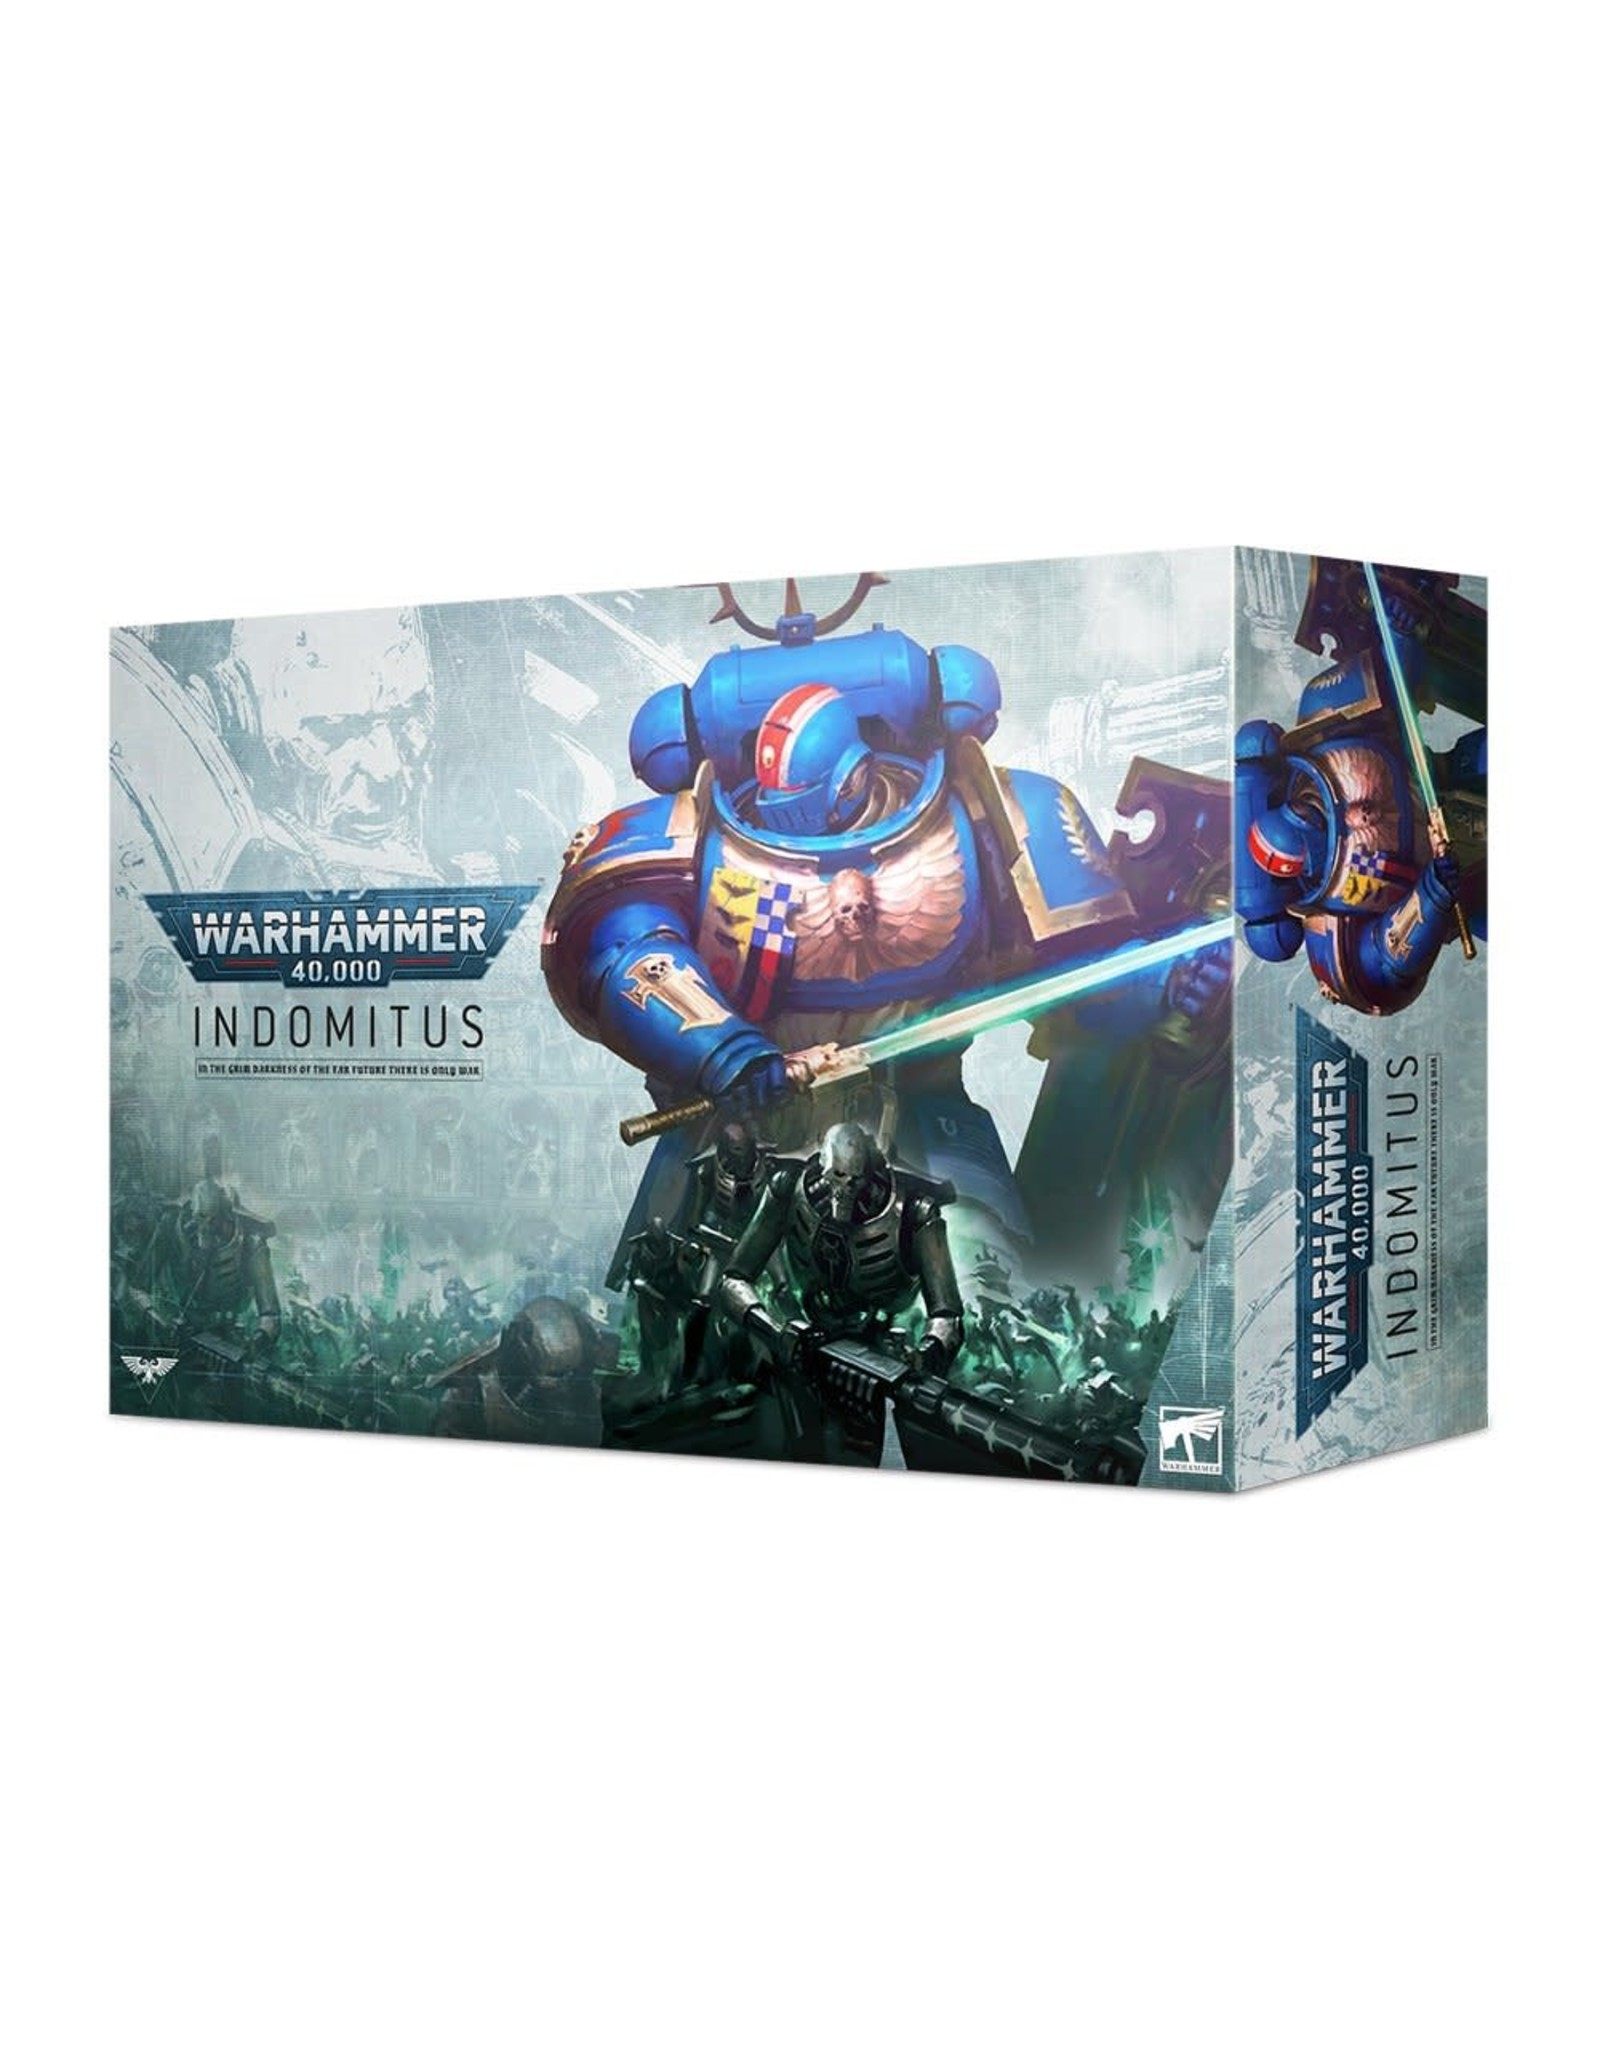 Games Workshop Indomitus Box (40K) - MADE TO ORDER SECOND WAVE PREORDER